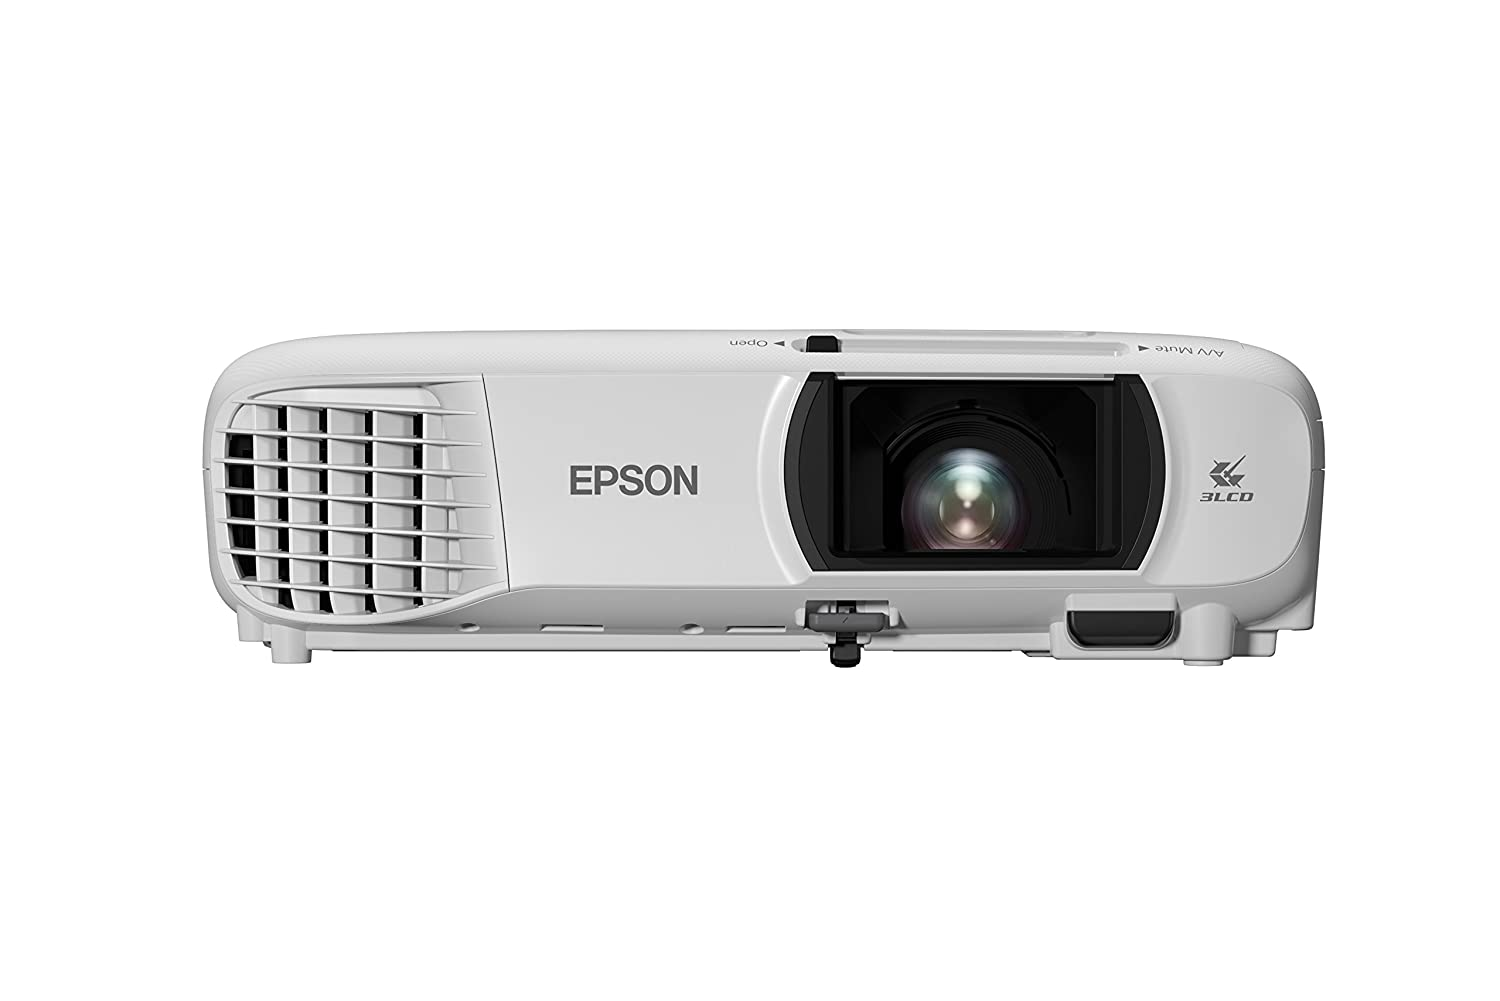 TALLA Built-in Wi-Fi. Epson EH-TW650 Video - Proyector (3100 lúmenes ANSI, 3LCD, 1080p (1920x1080), 15000:1, 16:9, 762 - 7620 mm (30 - 300